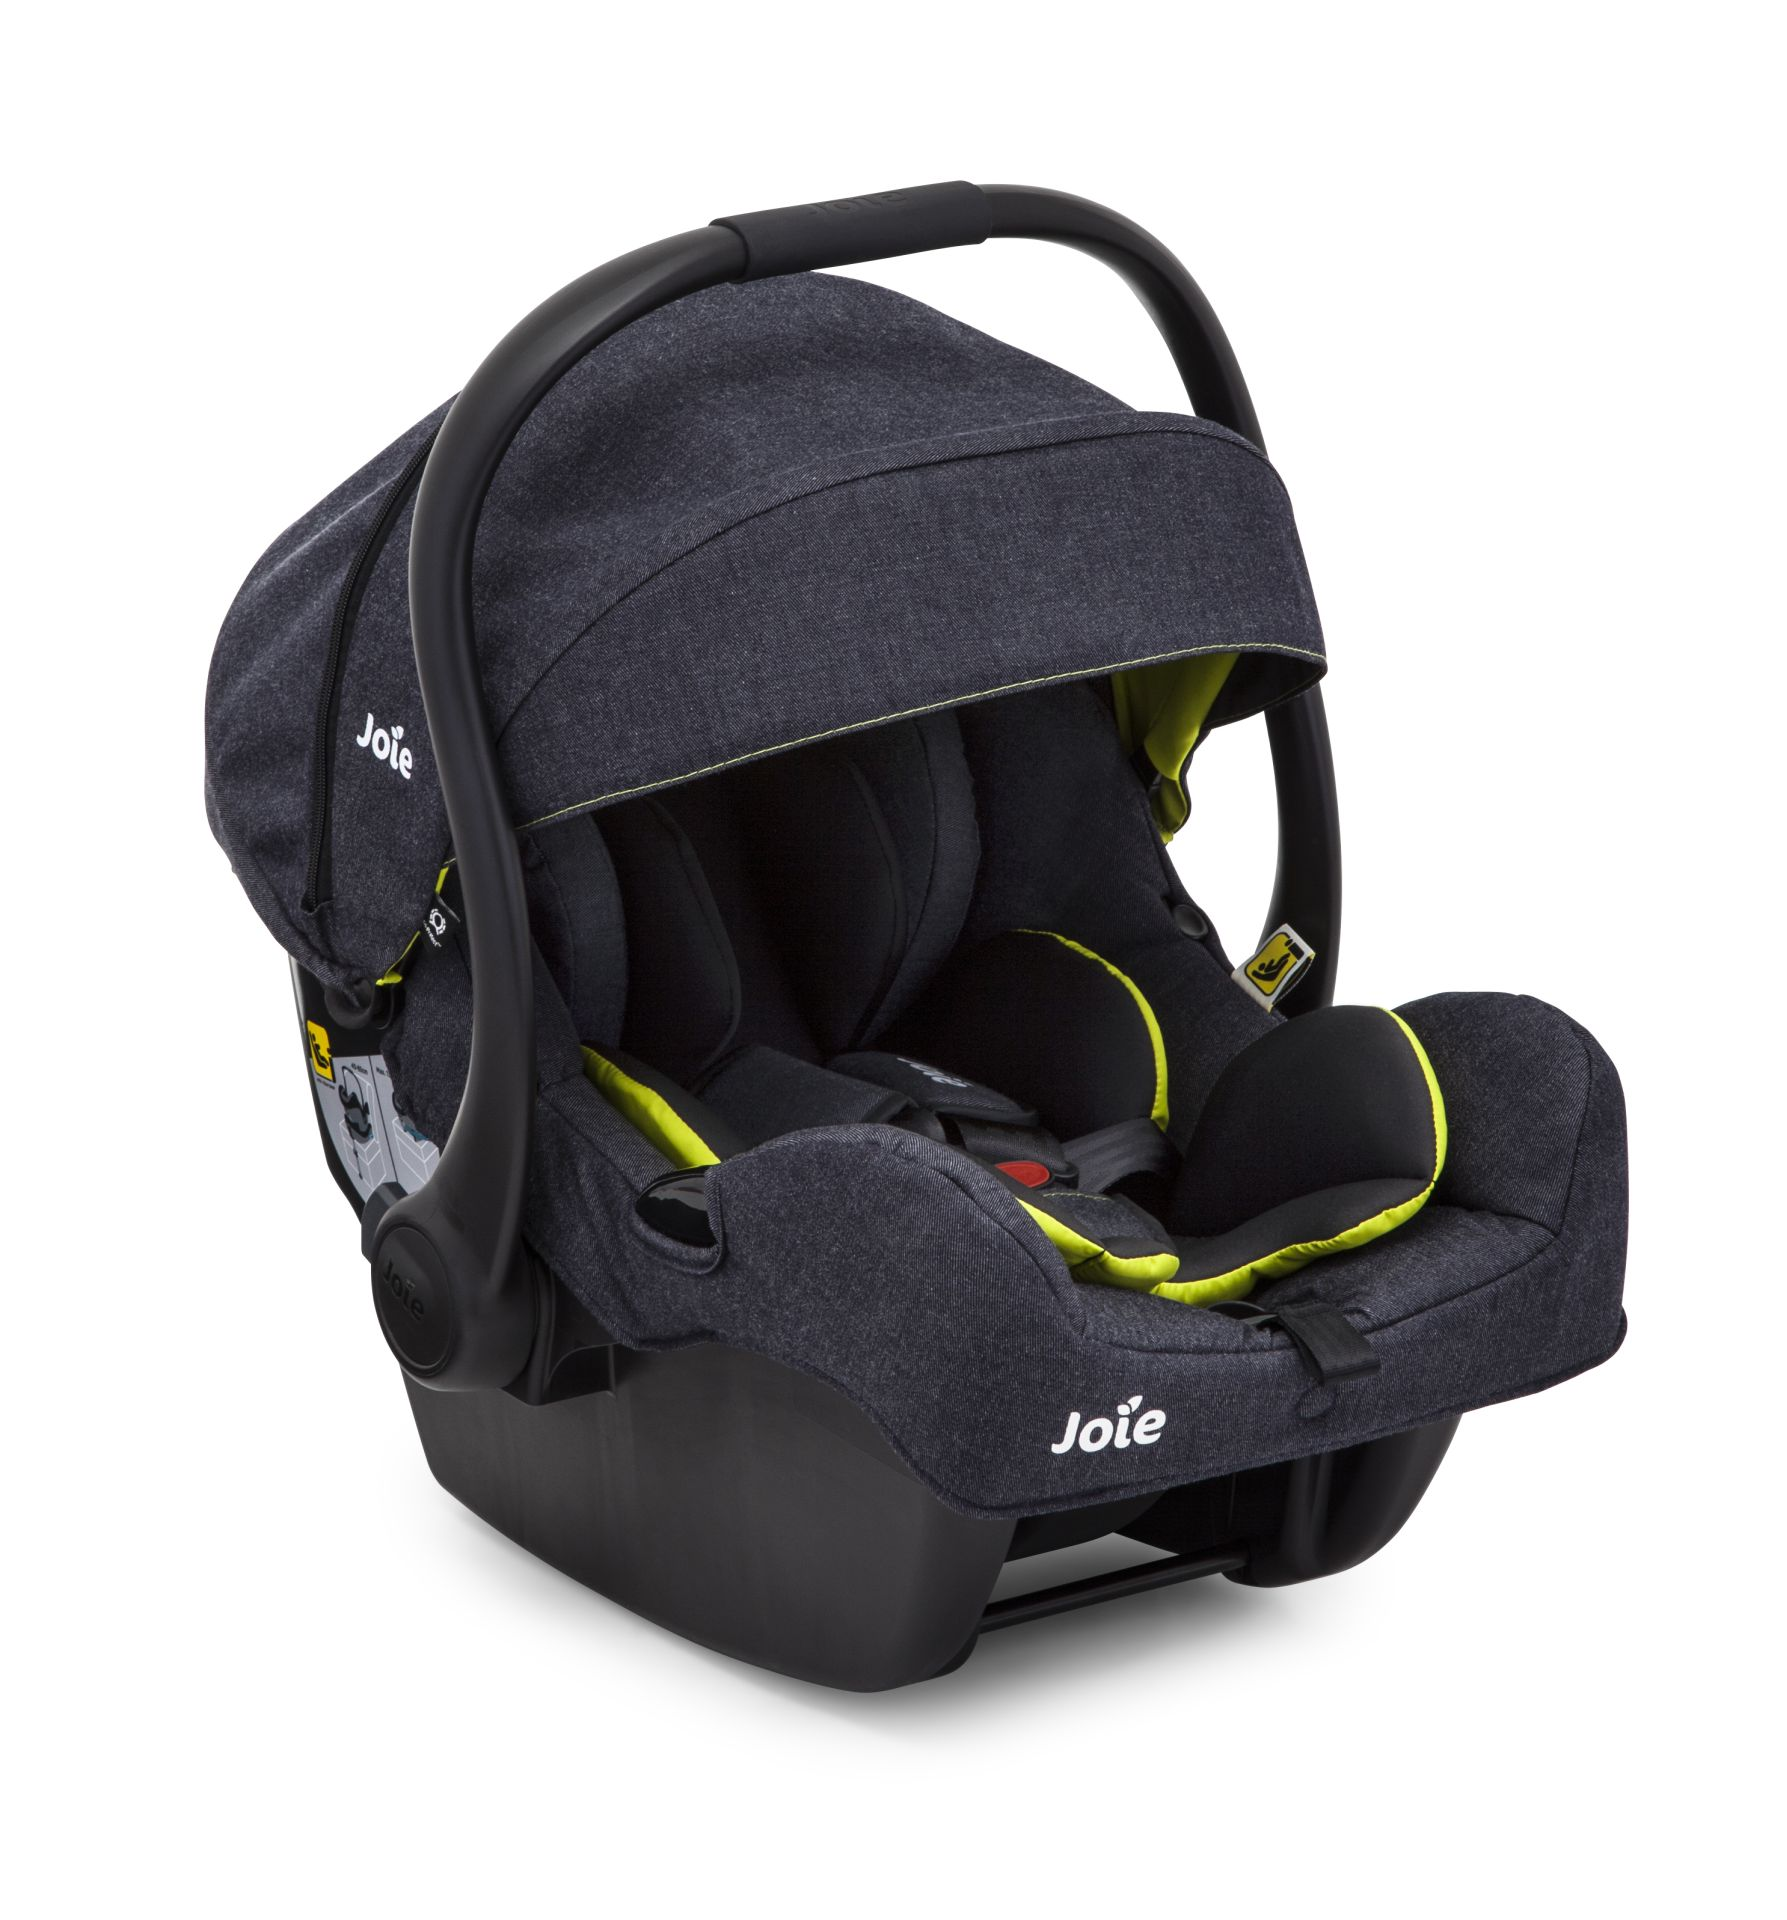 joie infant car seat i gemm 2017 denim zest buy at kidsroom car seats. Black Bedroom Furniture Sets. Home Design Ideas